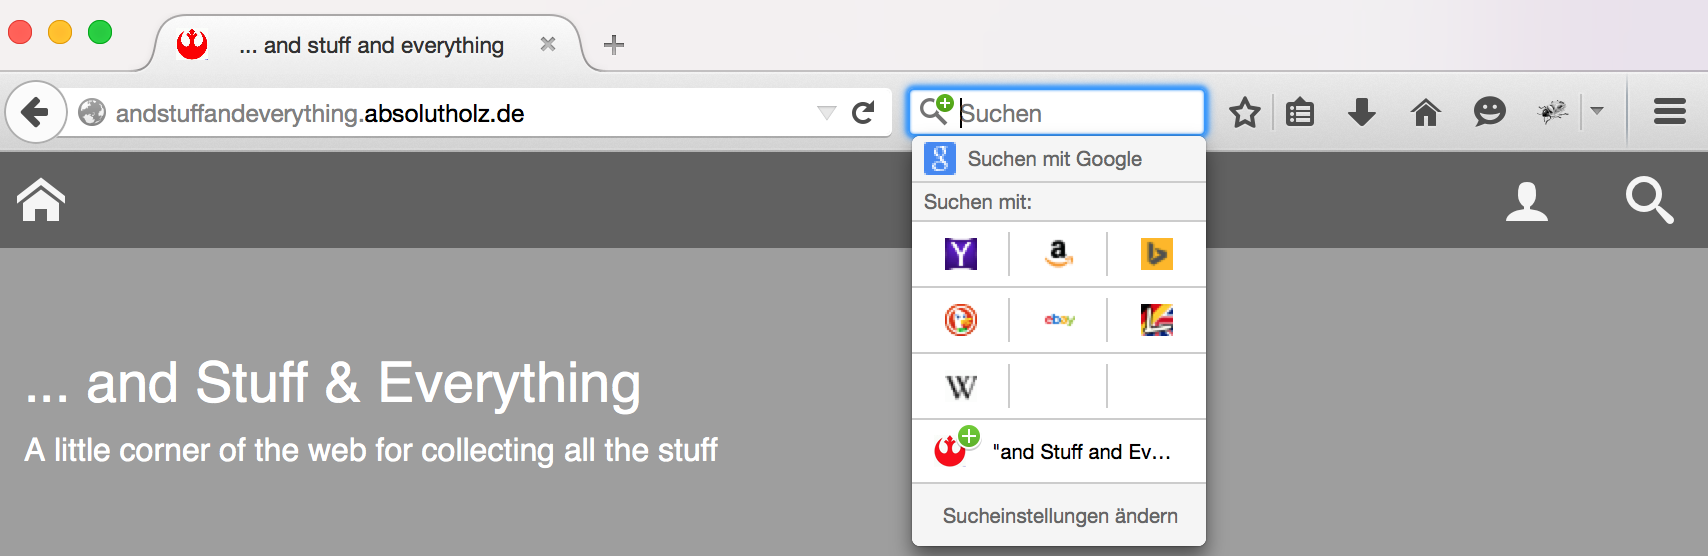 Add new OpenSearch Site Search to Firefox Omnibox - Step 2